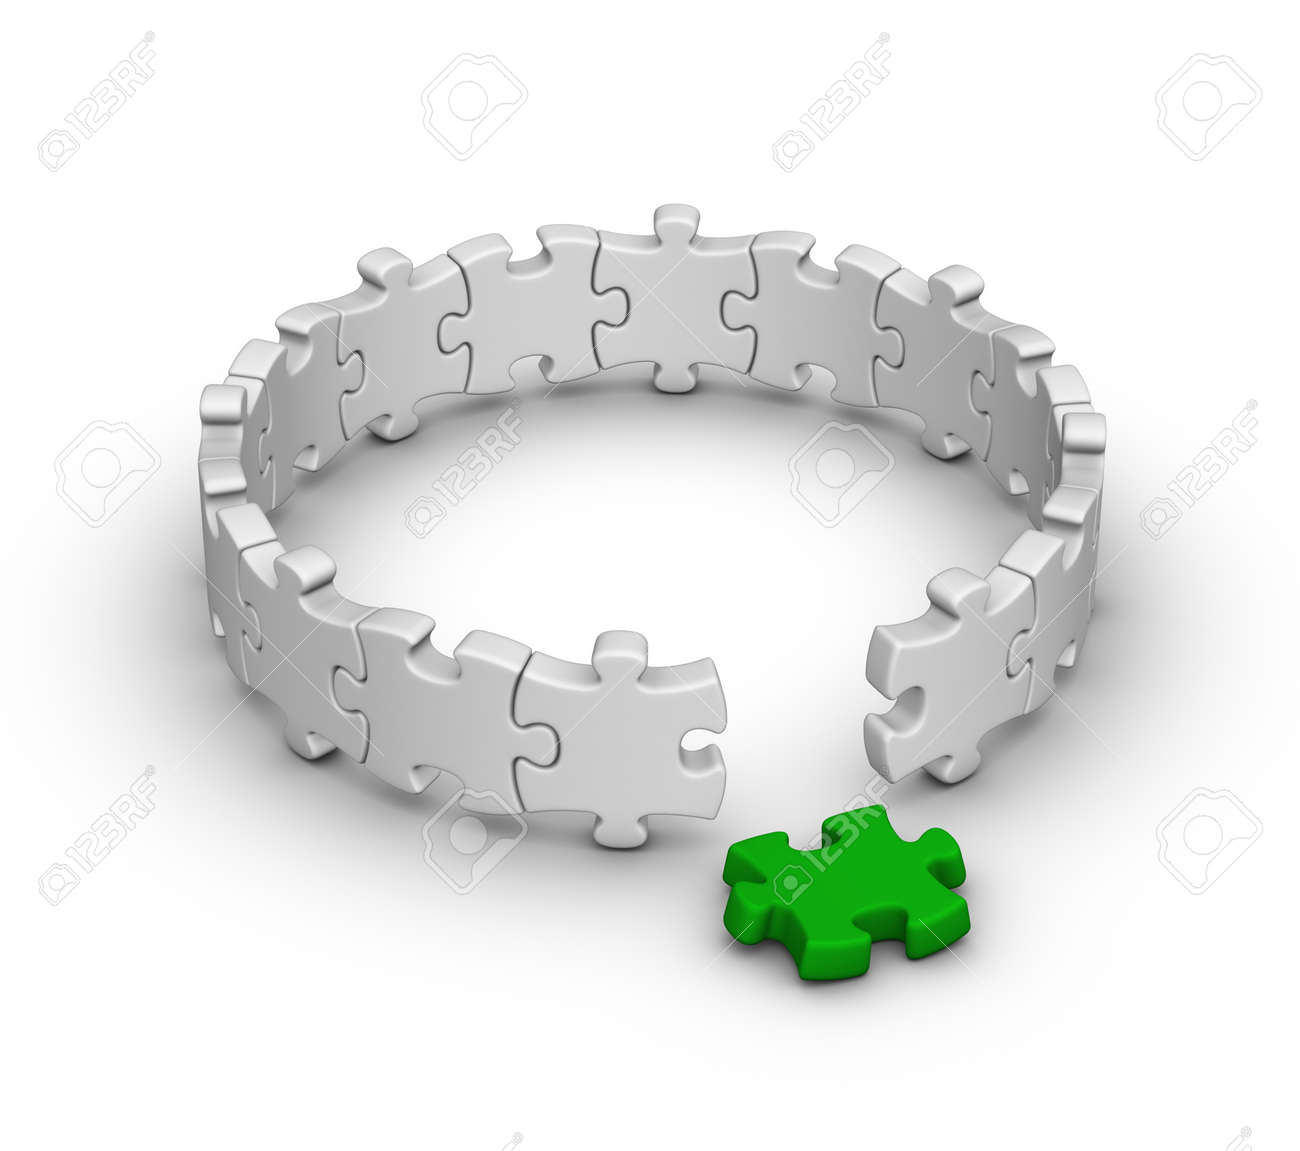 Gray Jigsaw Puzzles With One Red Piece Stock Photo, Picture And ...